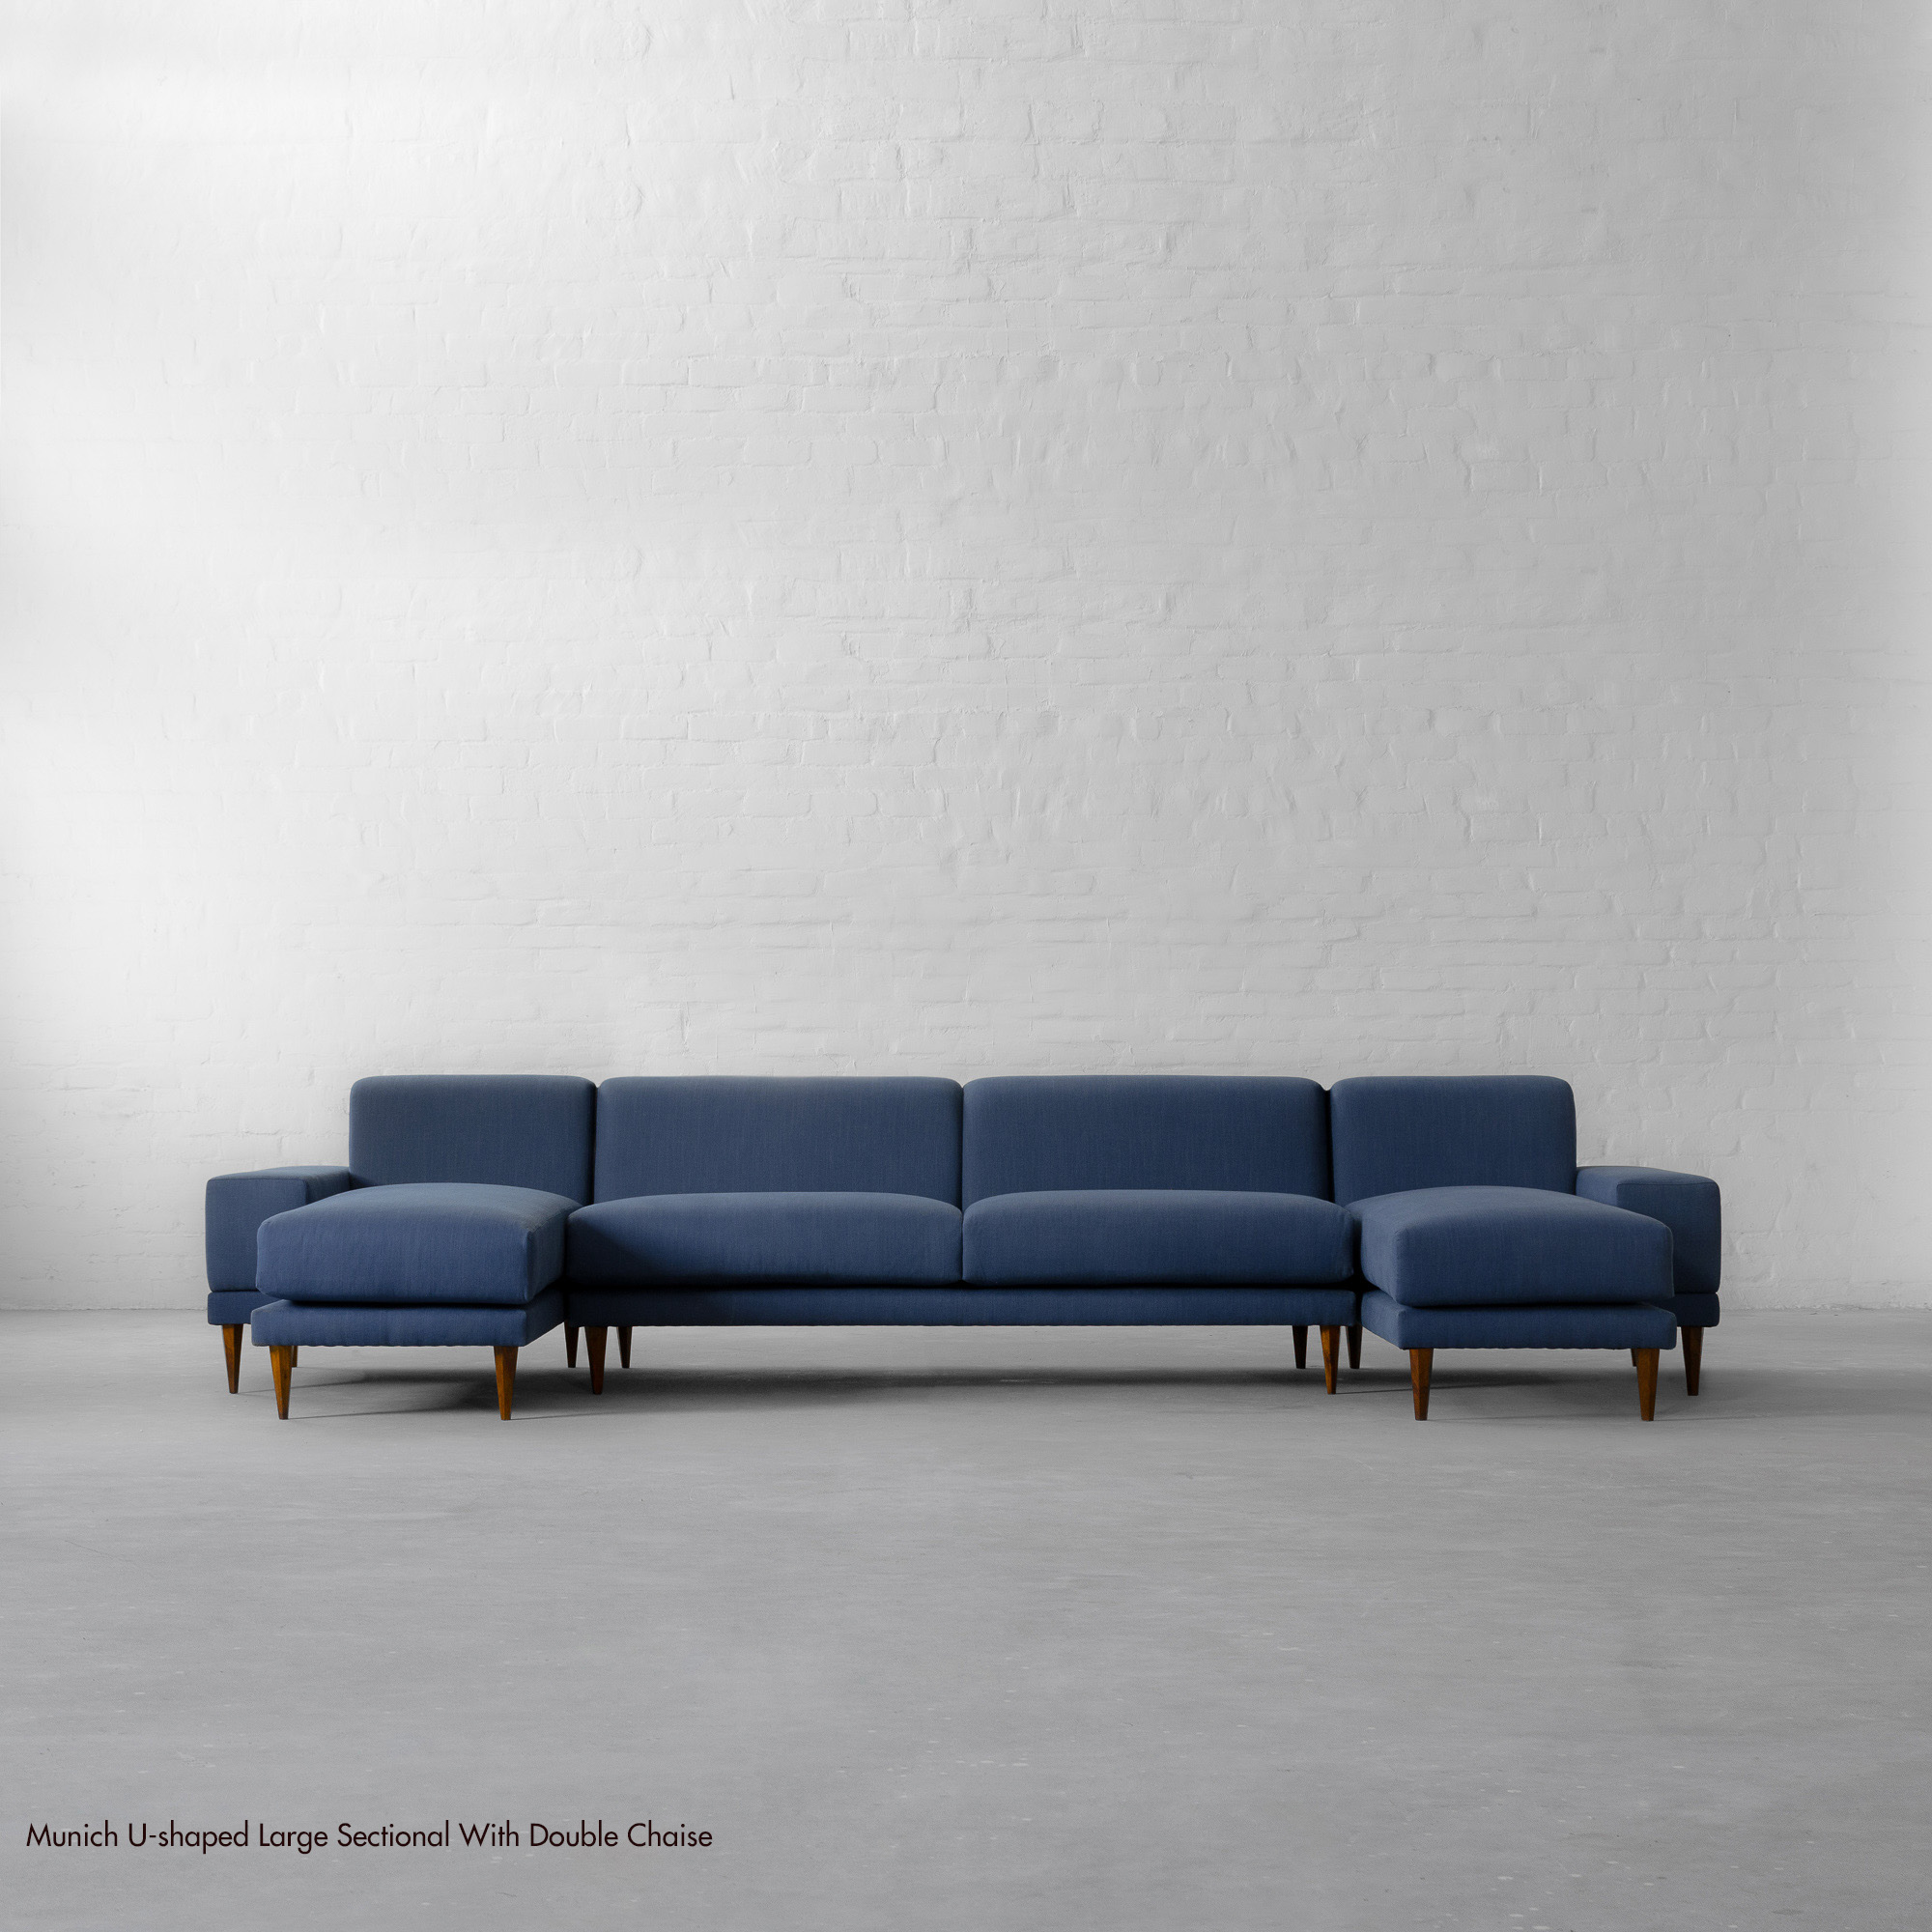 Large U-shaped Sectional with Double Chaise - Munich